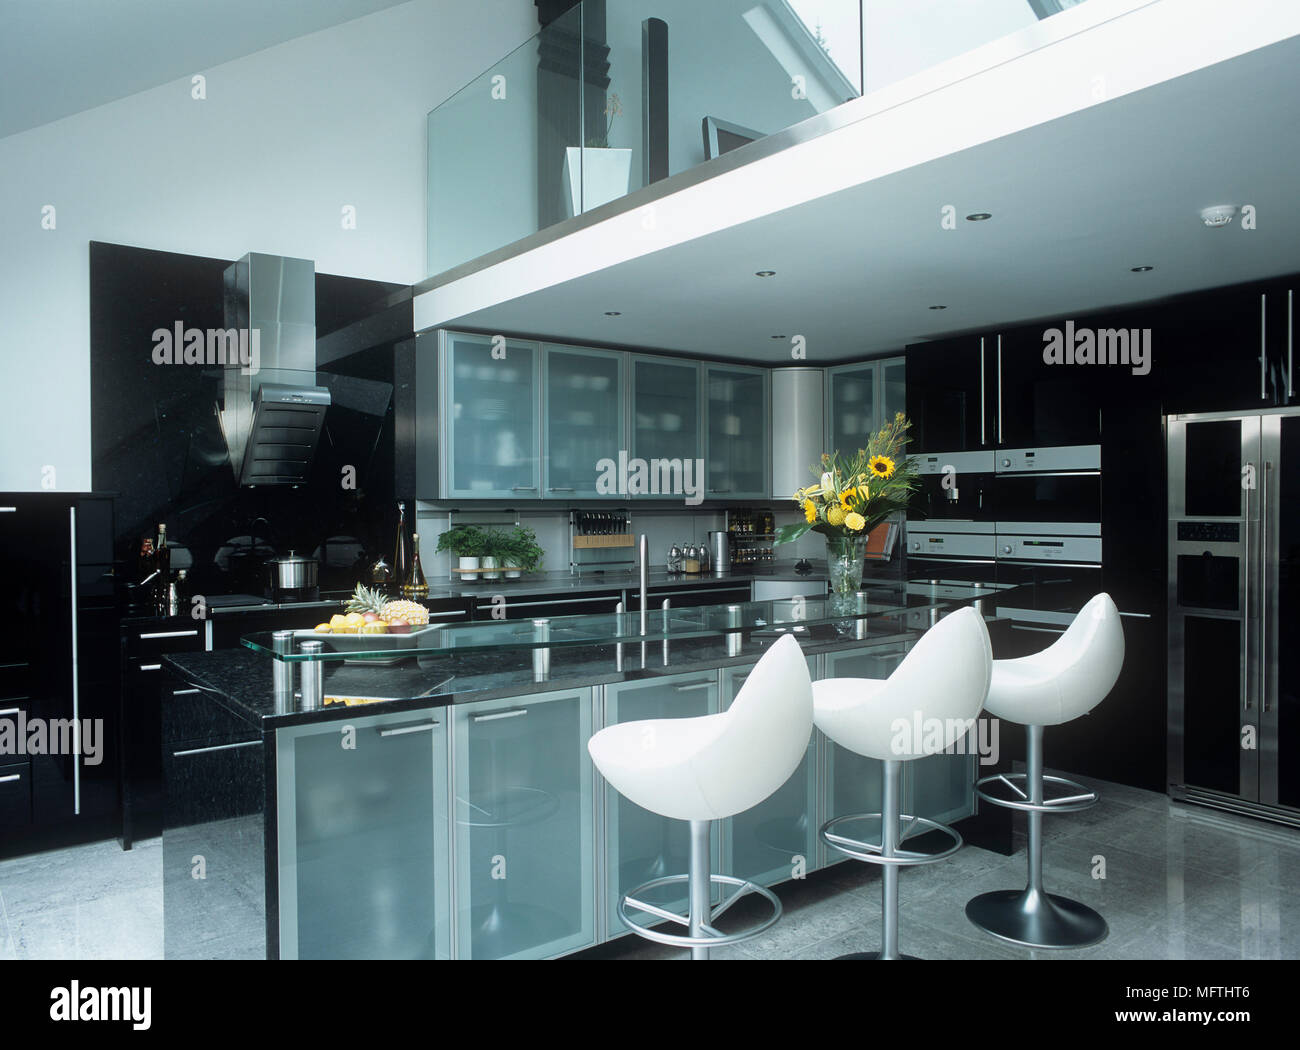 A modern kitchen with black, white, stainless steel and frosted ...